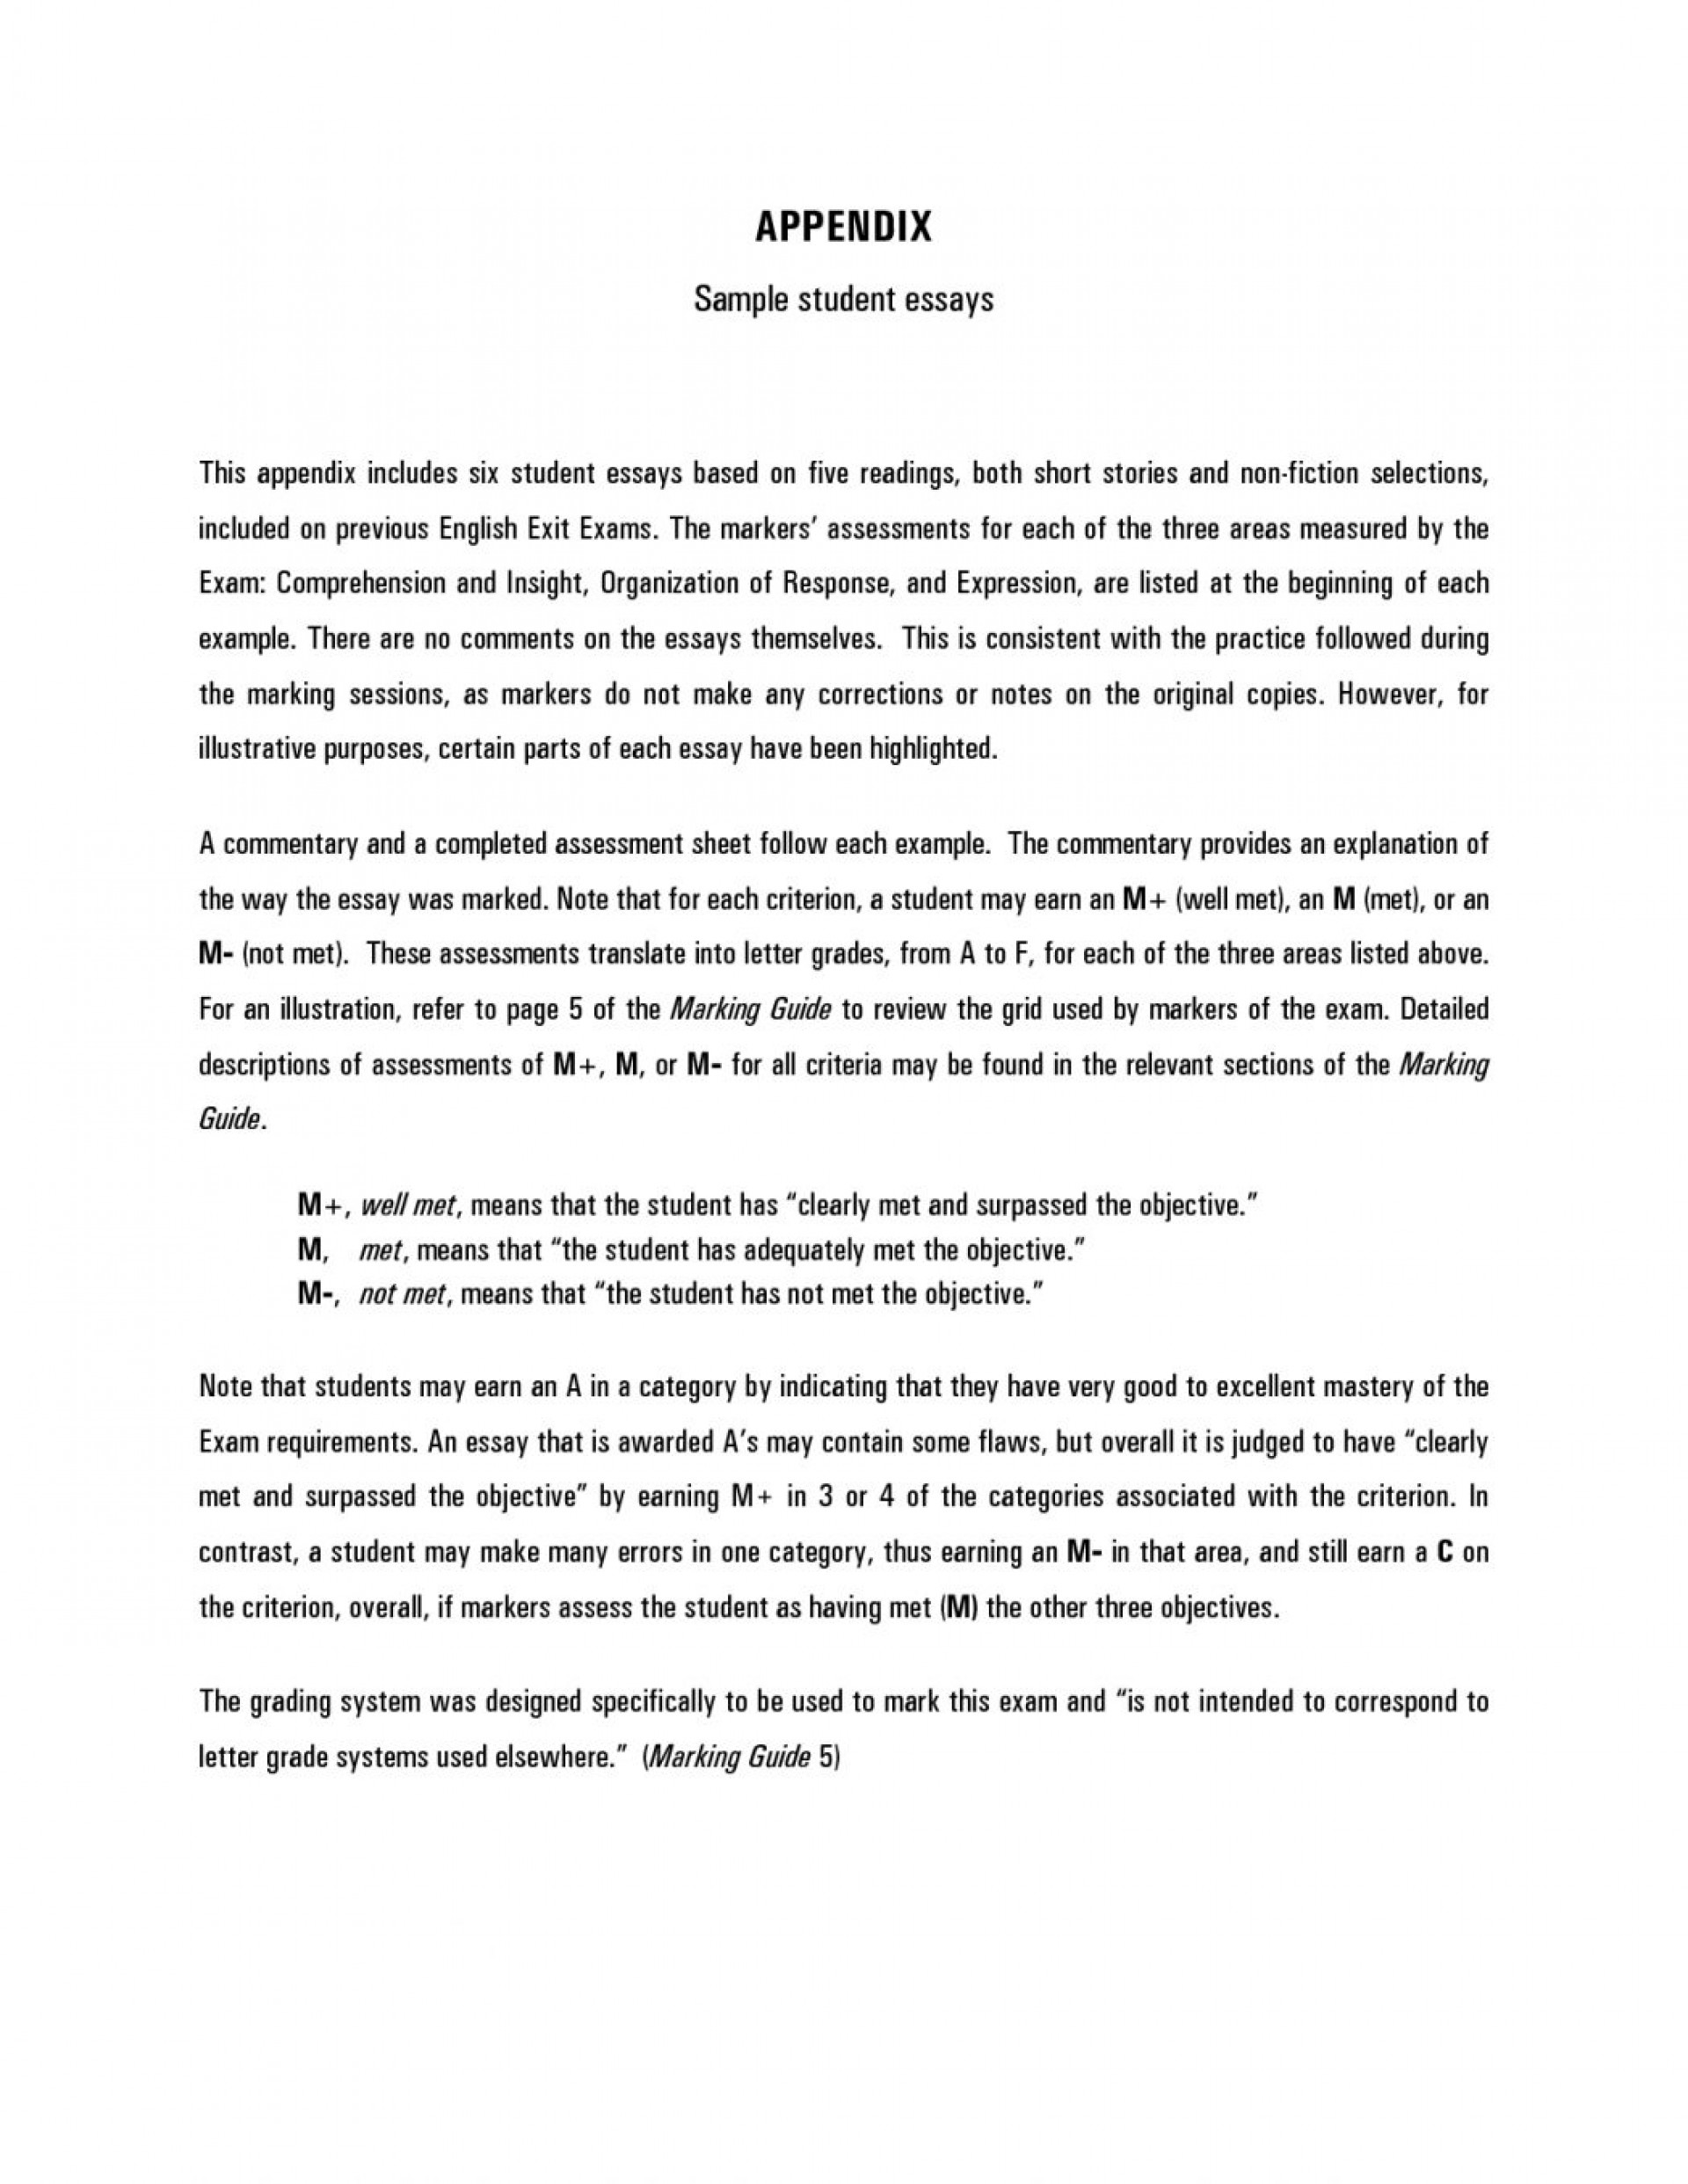 017 Persuasive Essay Example High School Writings And Essays Topics For English What Is Good Topic Examples Of I Uk Schoolers Pdf Speech Students Funny Argumentative Prompts Unique In Urdu Halloween Writing Questions 1920